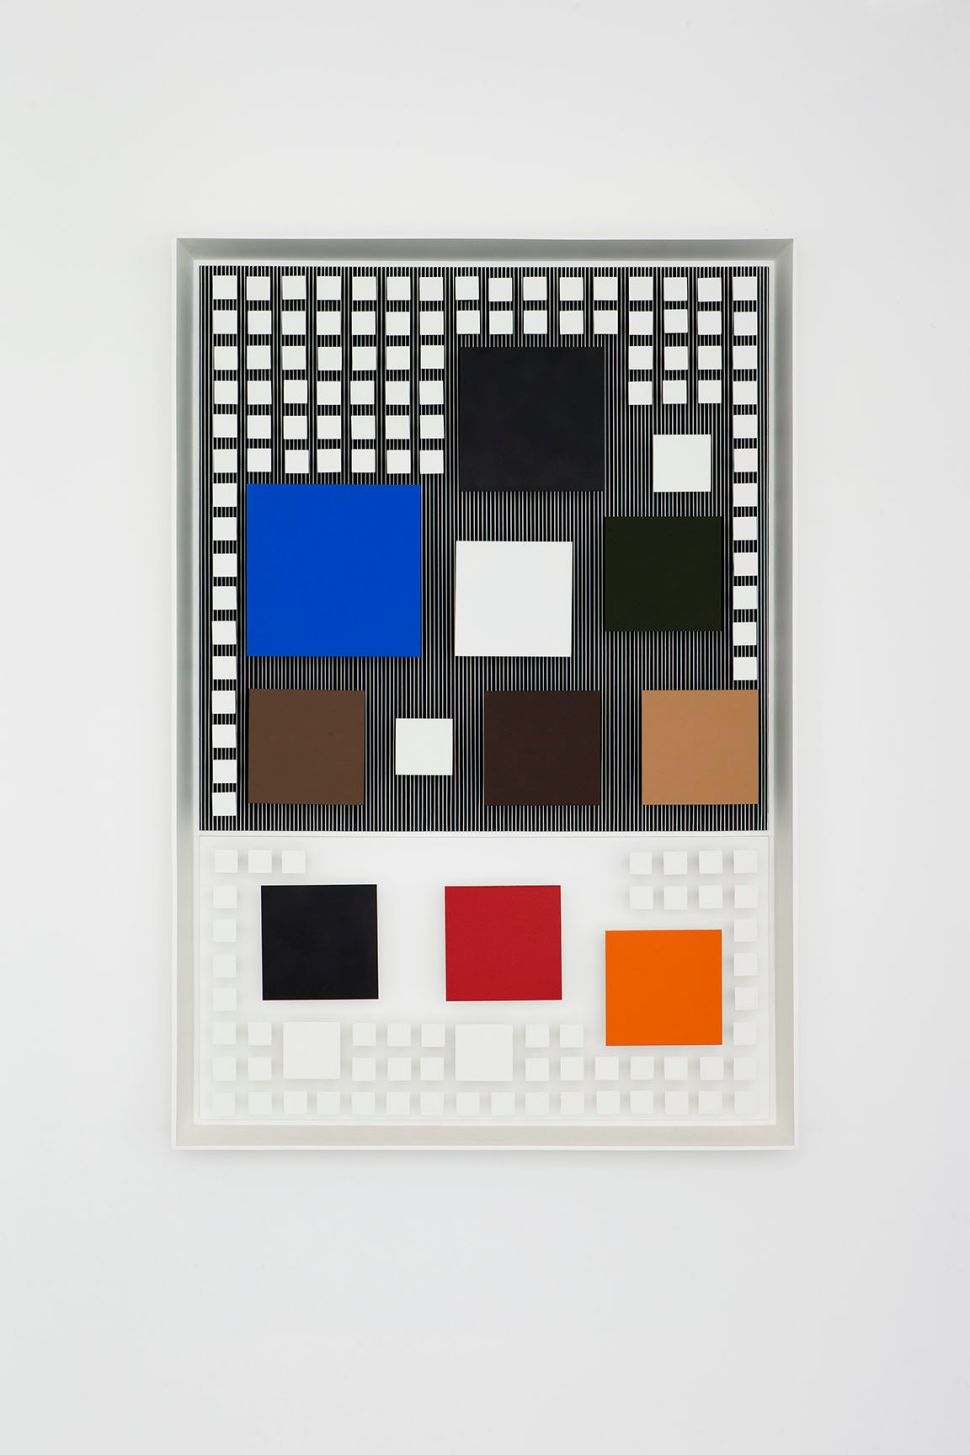 The Missing Link: Galerie Perrotin States the Case for Jesús Rafael Soto